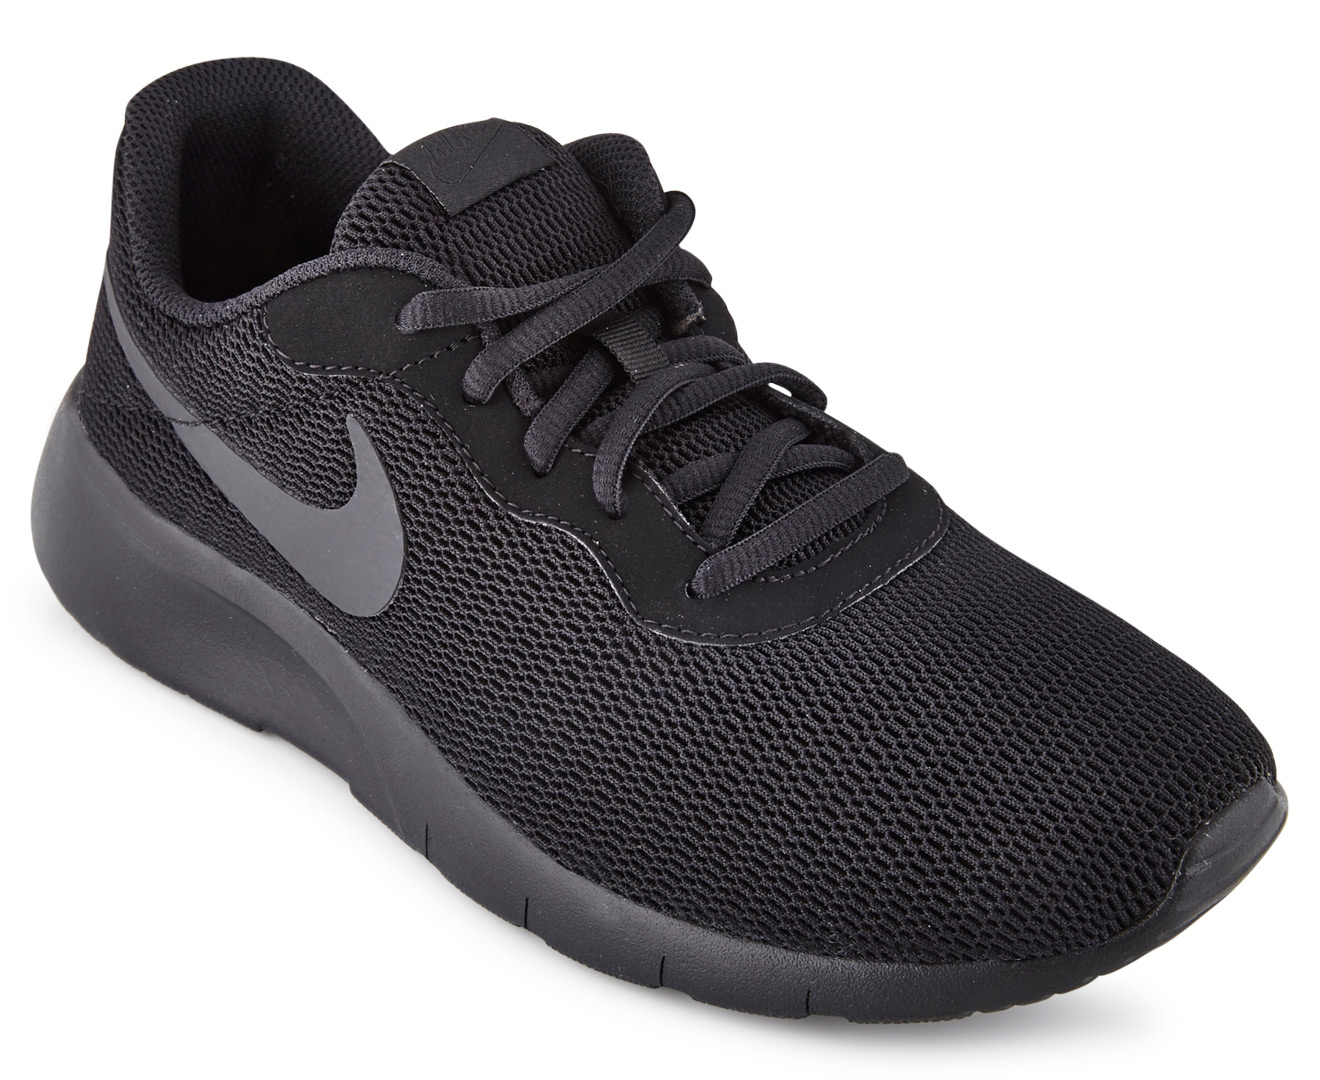 nike tanjun grade school boys' running shoes nz